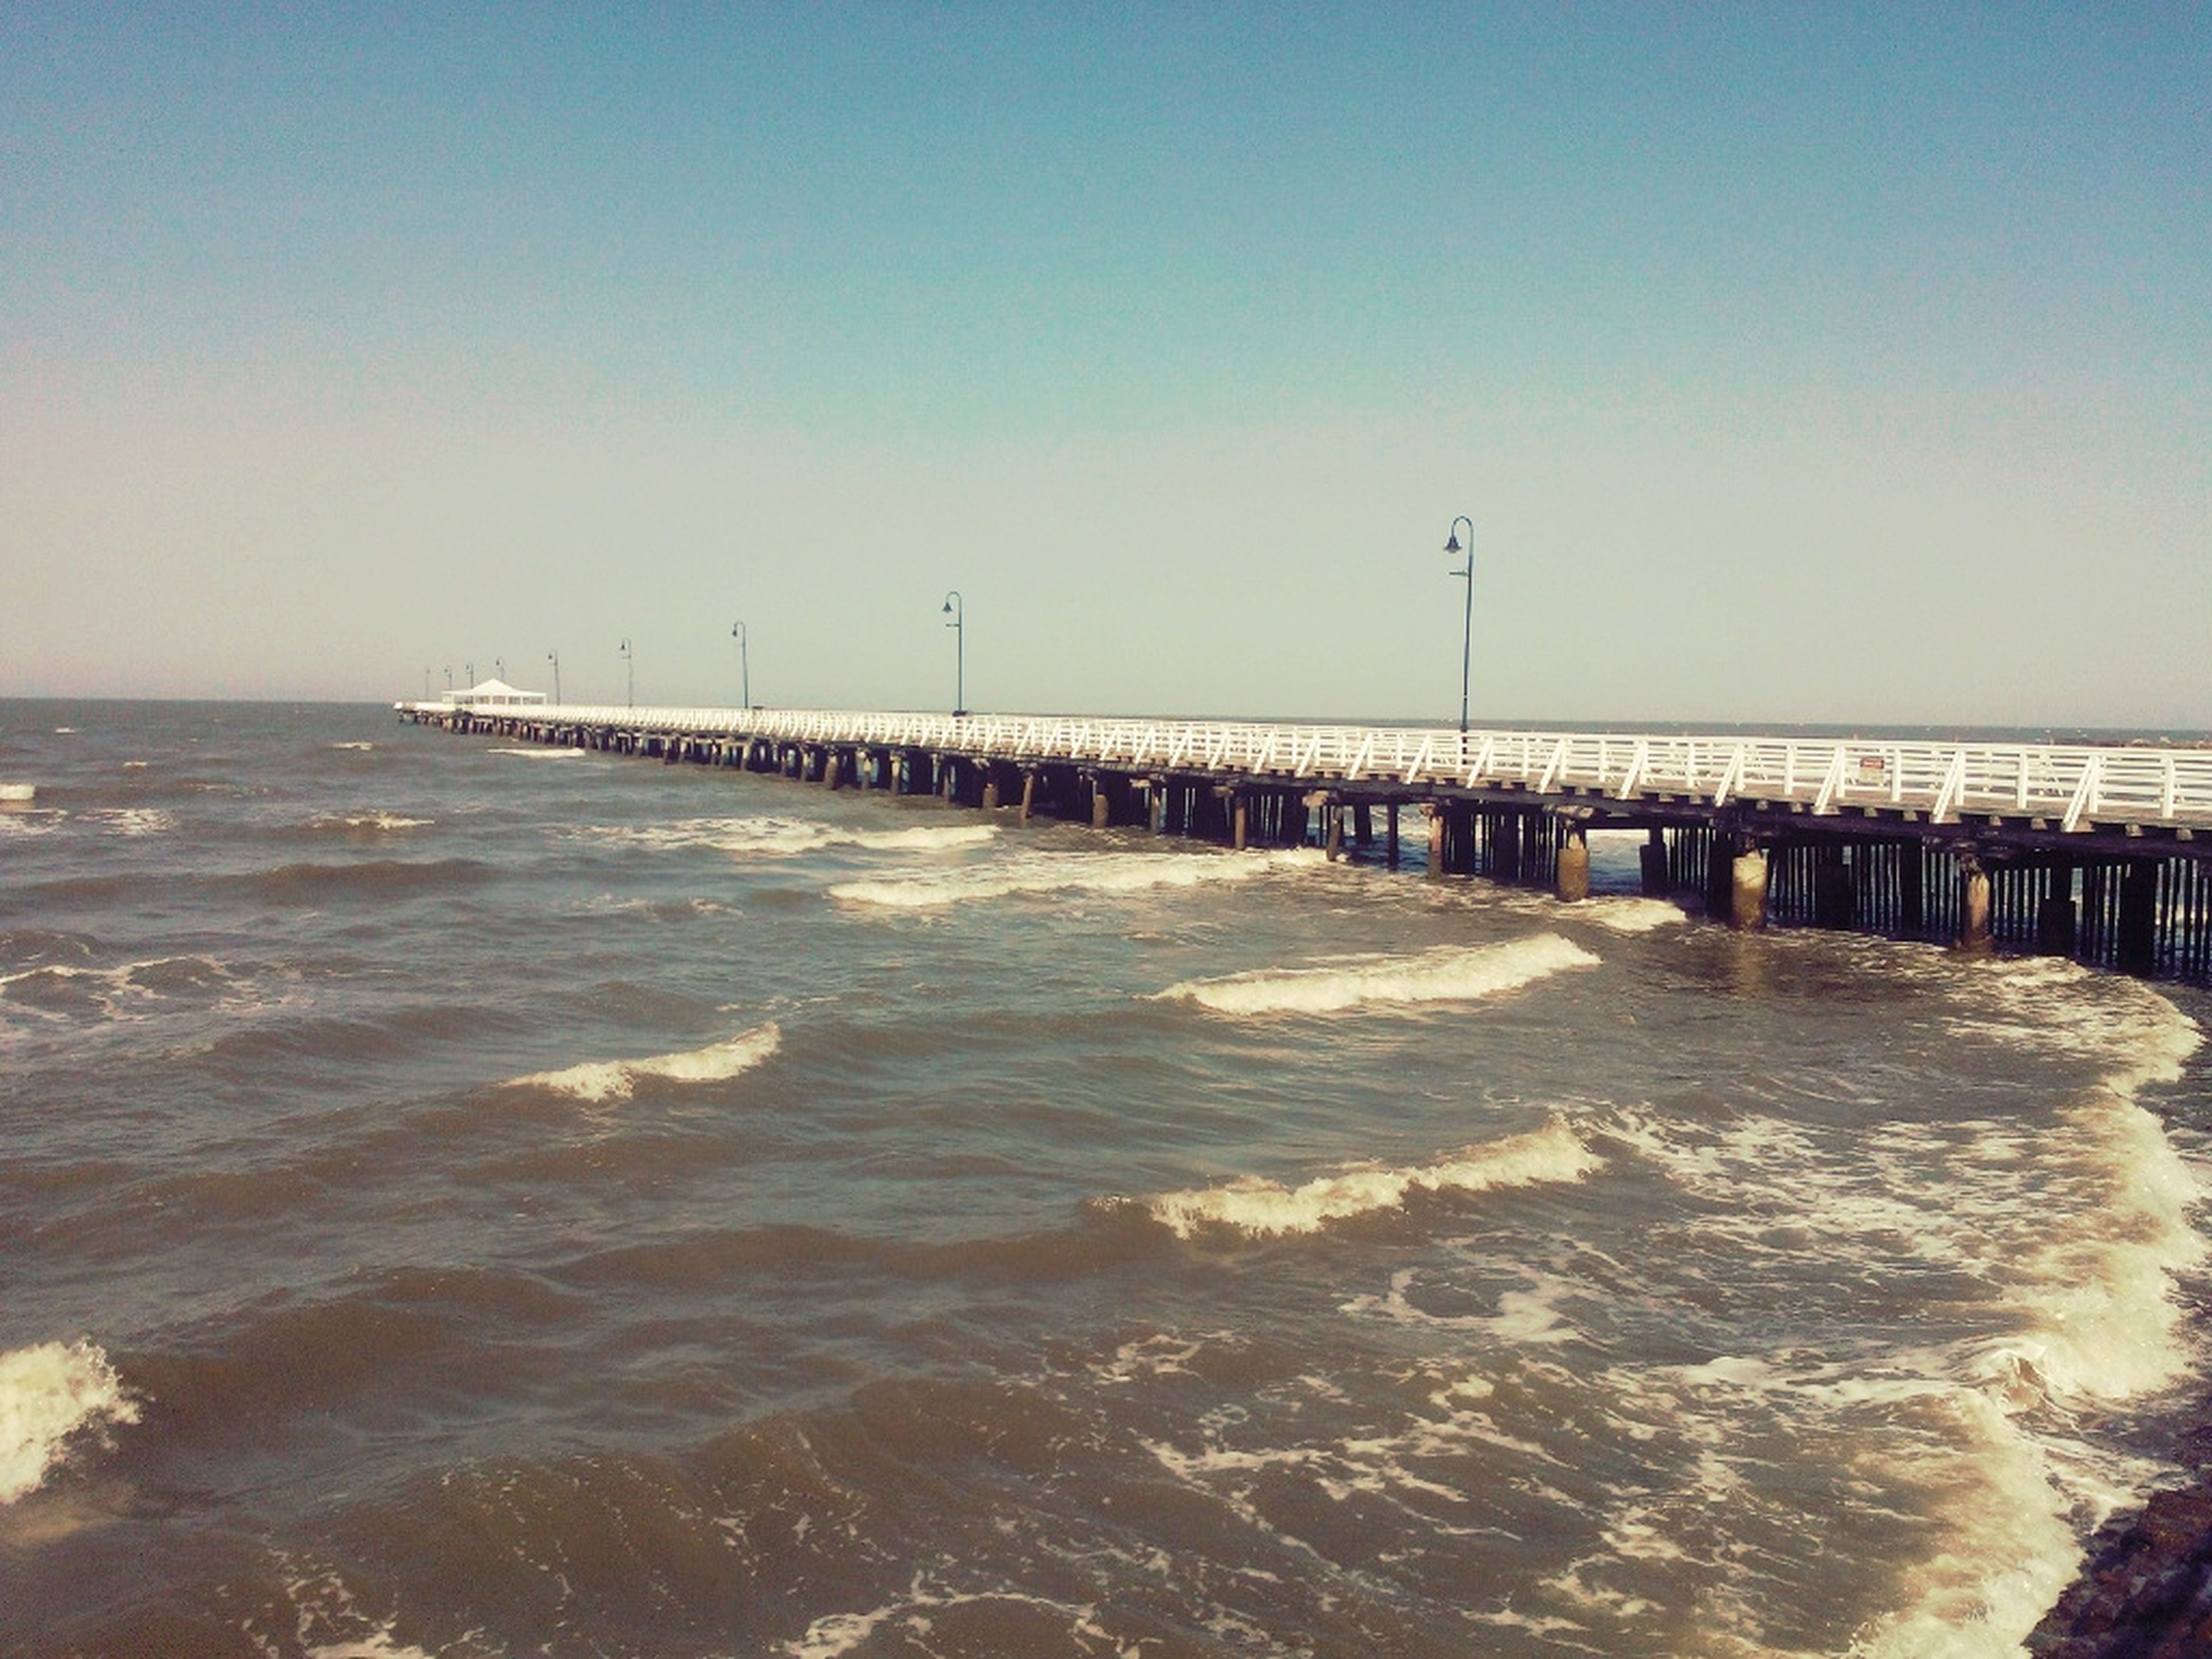 sea, water, clear sky, horizon over water, beach, copy space, scenics, tranquil scene, tranquility, pier, wave, beauty in nature, shore, nature, built structure, surf, blue, idyllic, sand, incidental people